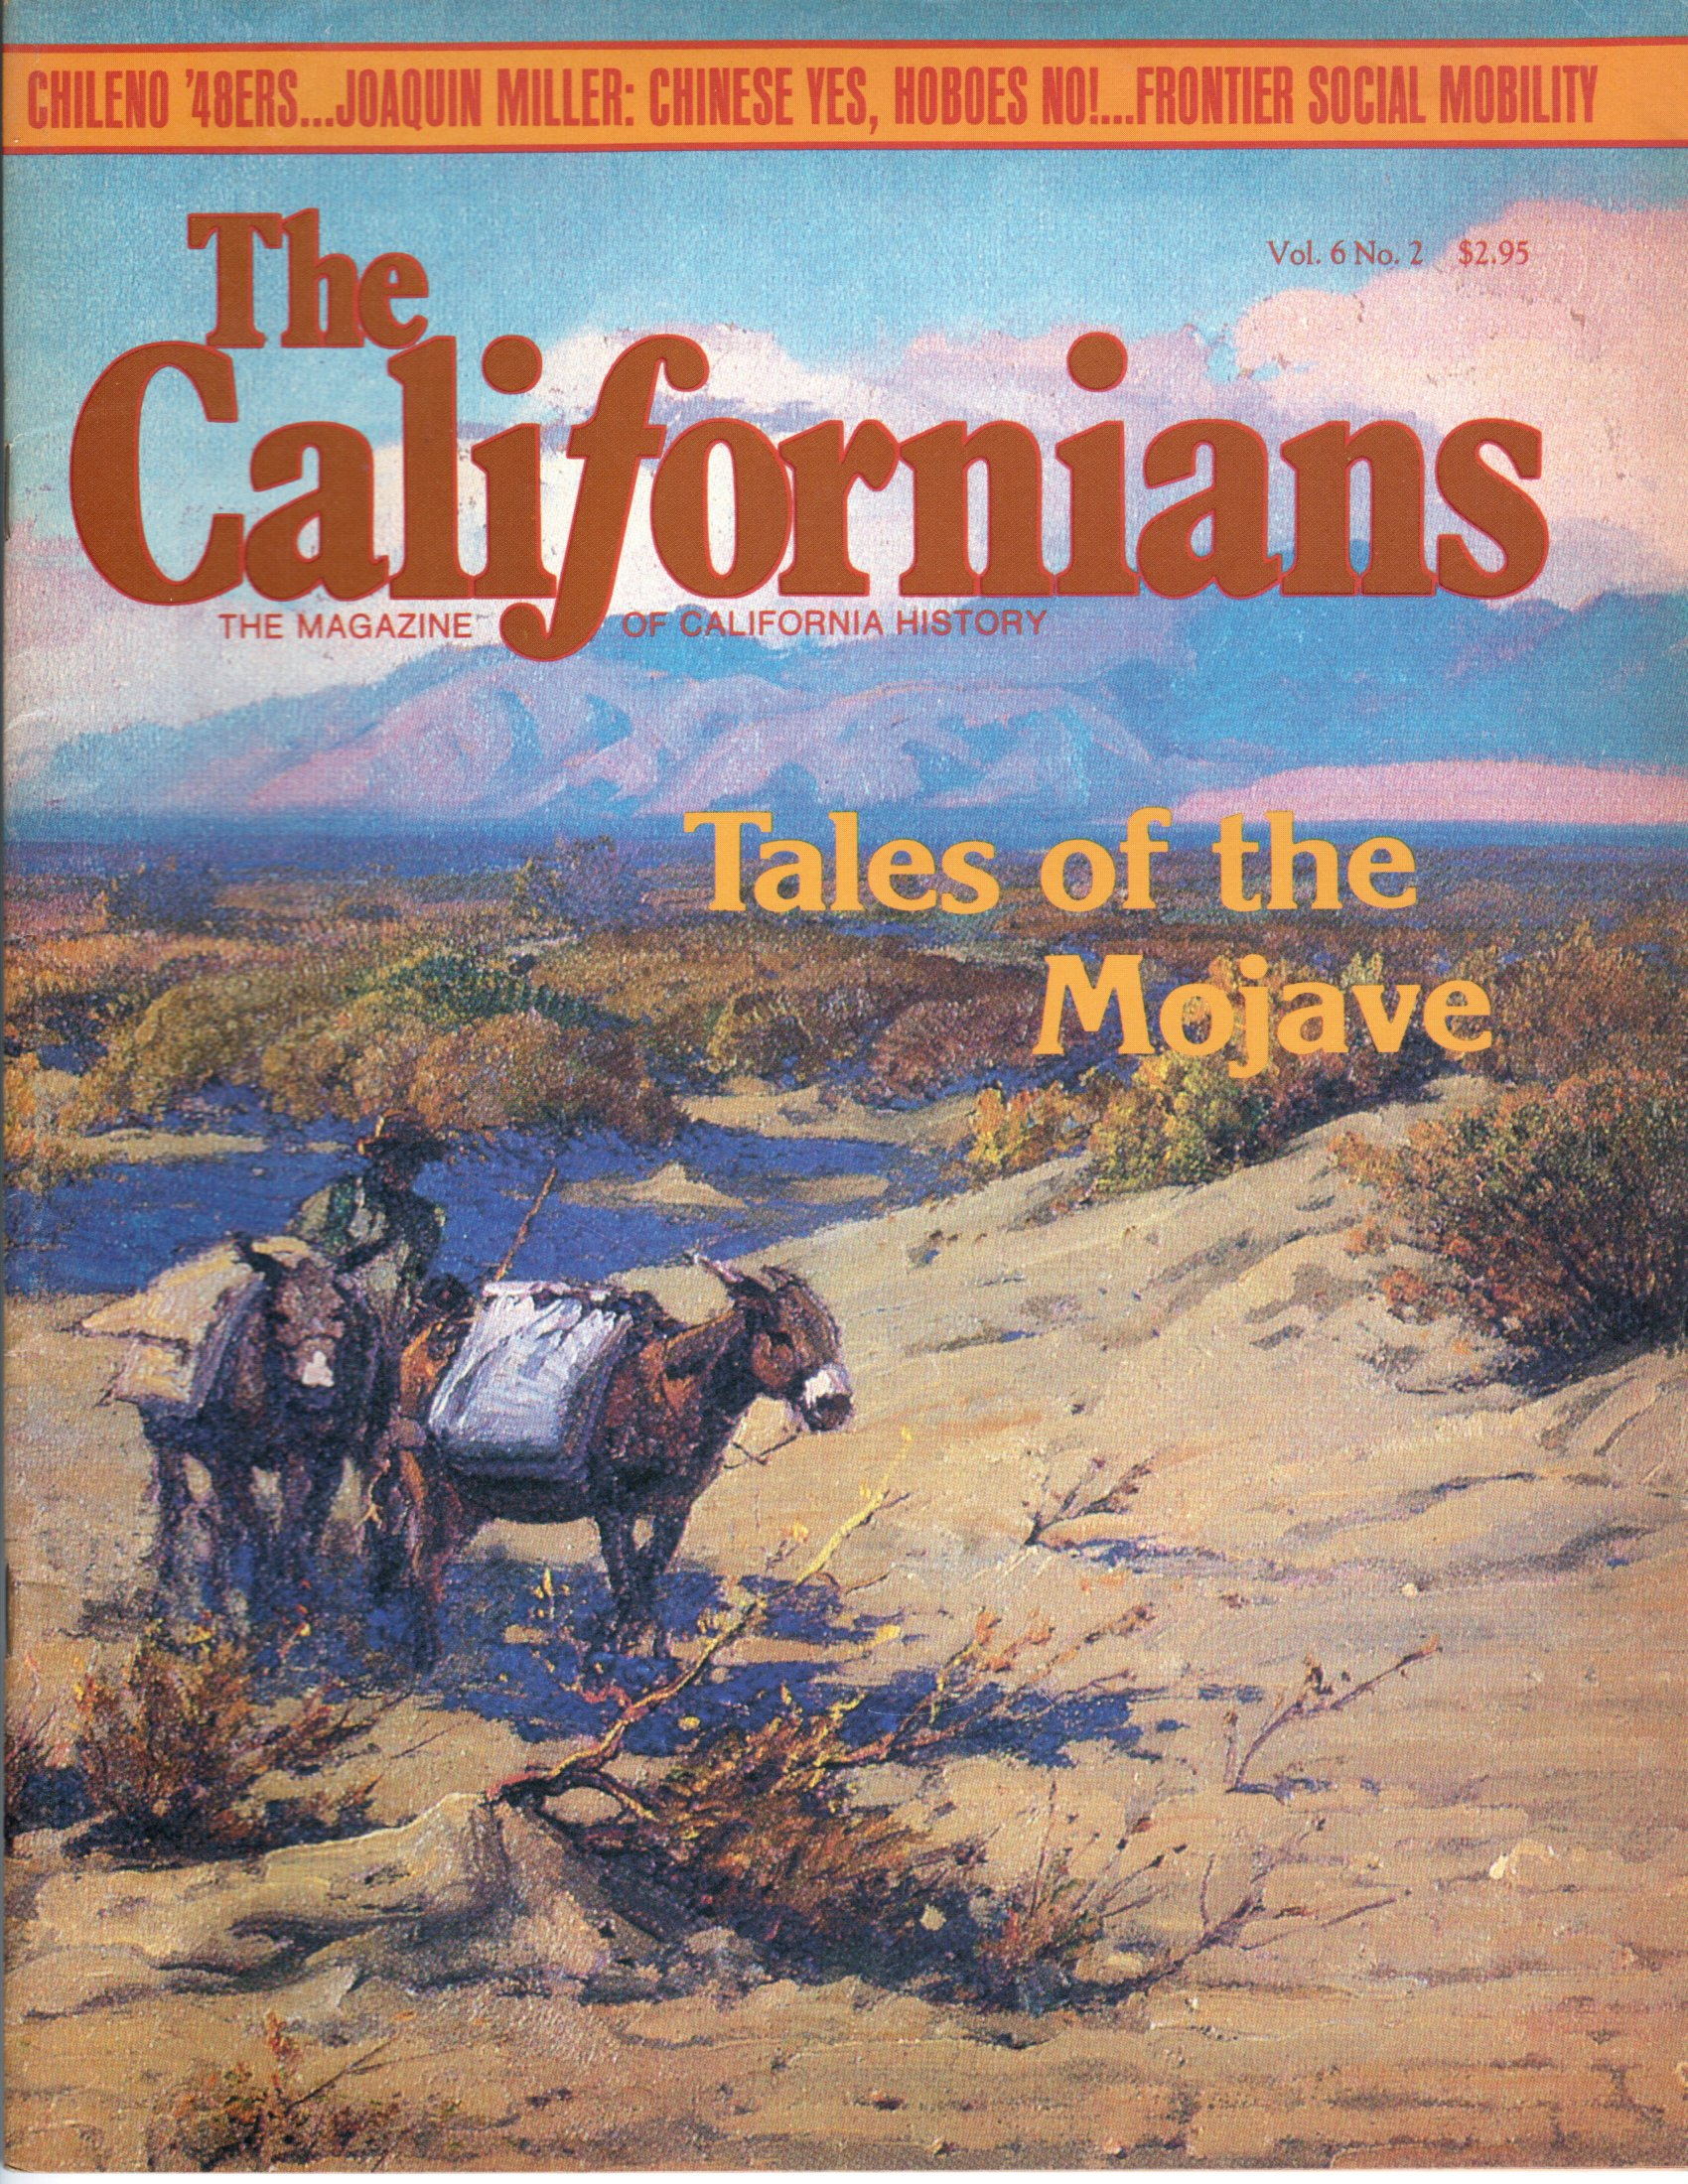 Image for The Californians. The Magazine of California History. Tales of the Mojave  [Volume 6, Number 2, March/April 1988]